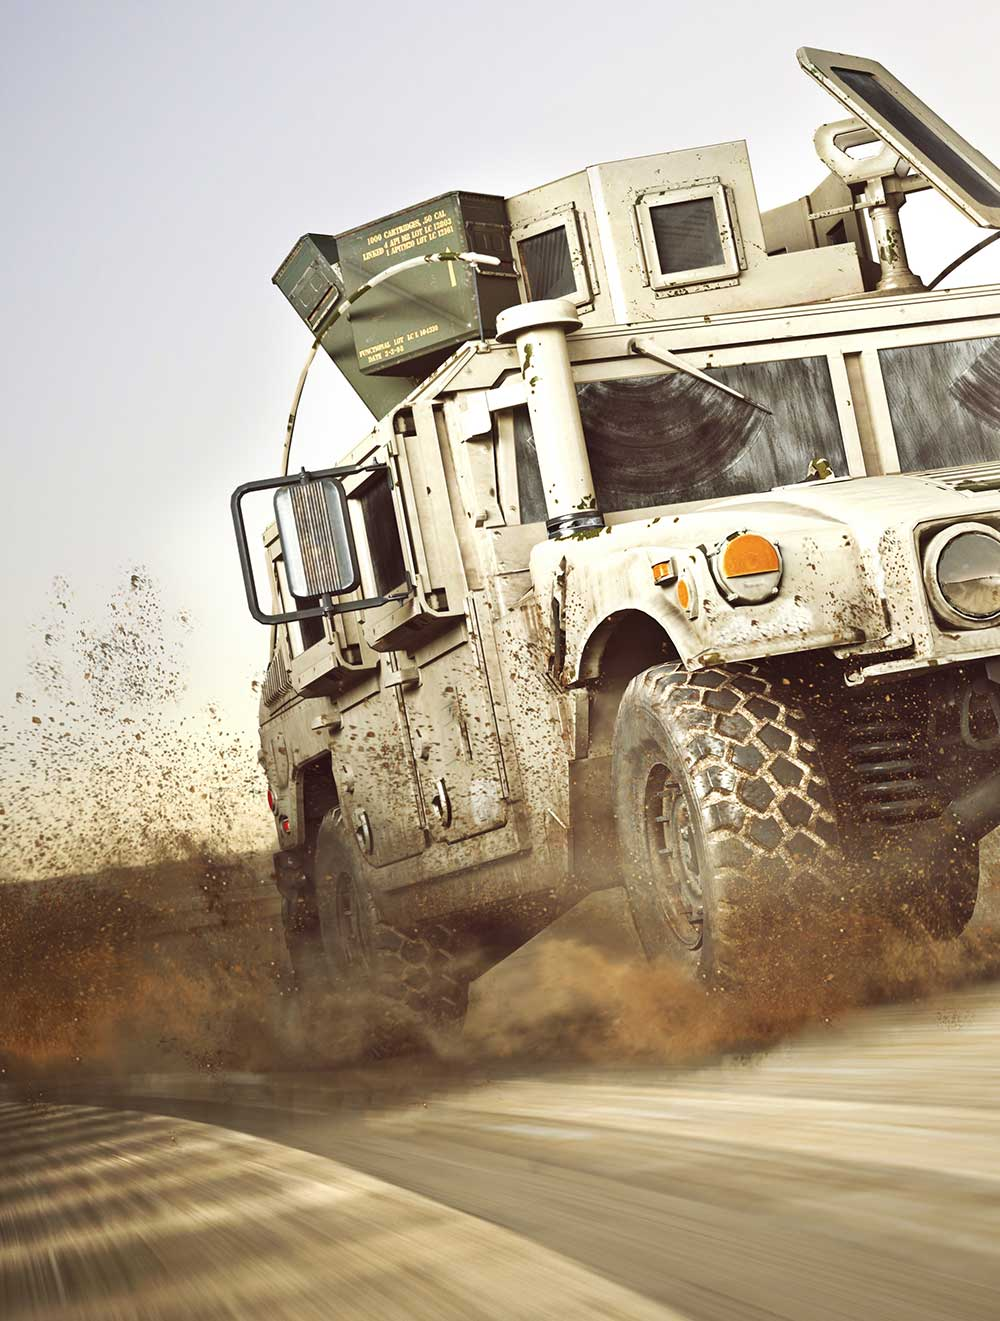 Military Truck in the Sand